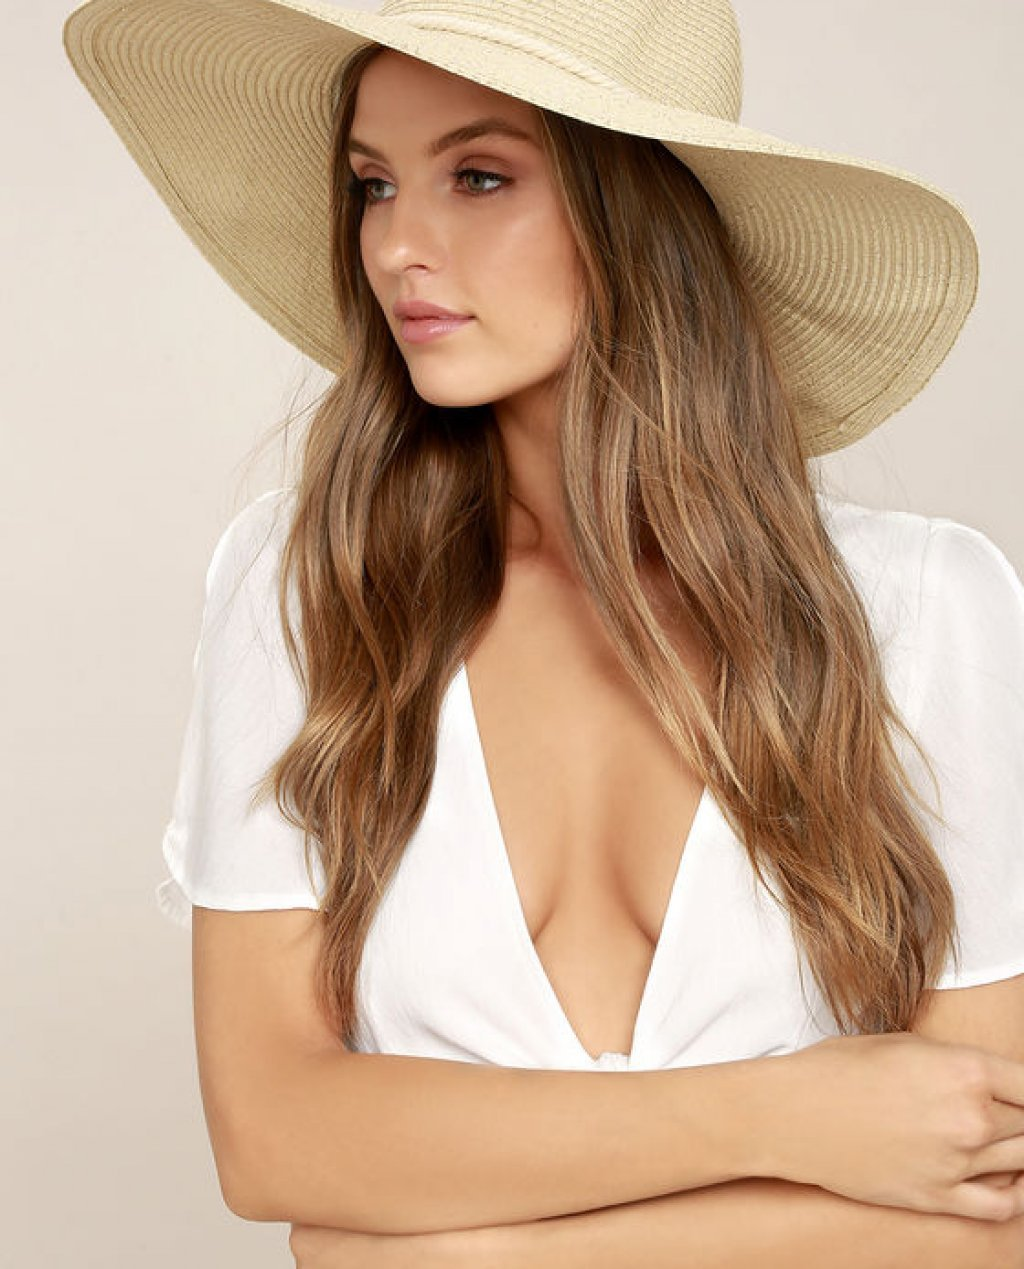 Free as a Bird Silver and Beige Floppy Straw Hat